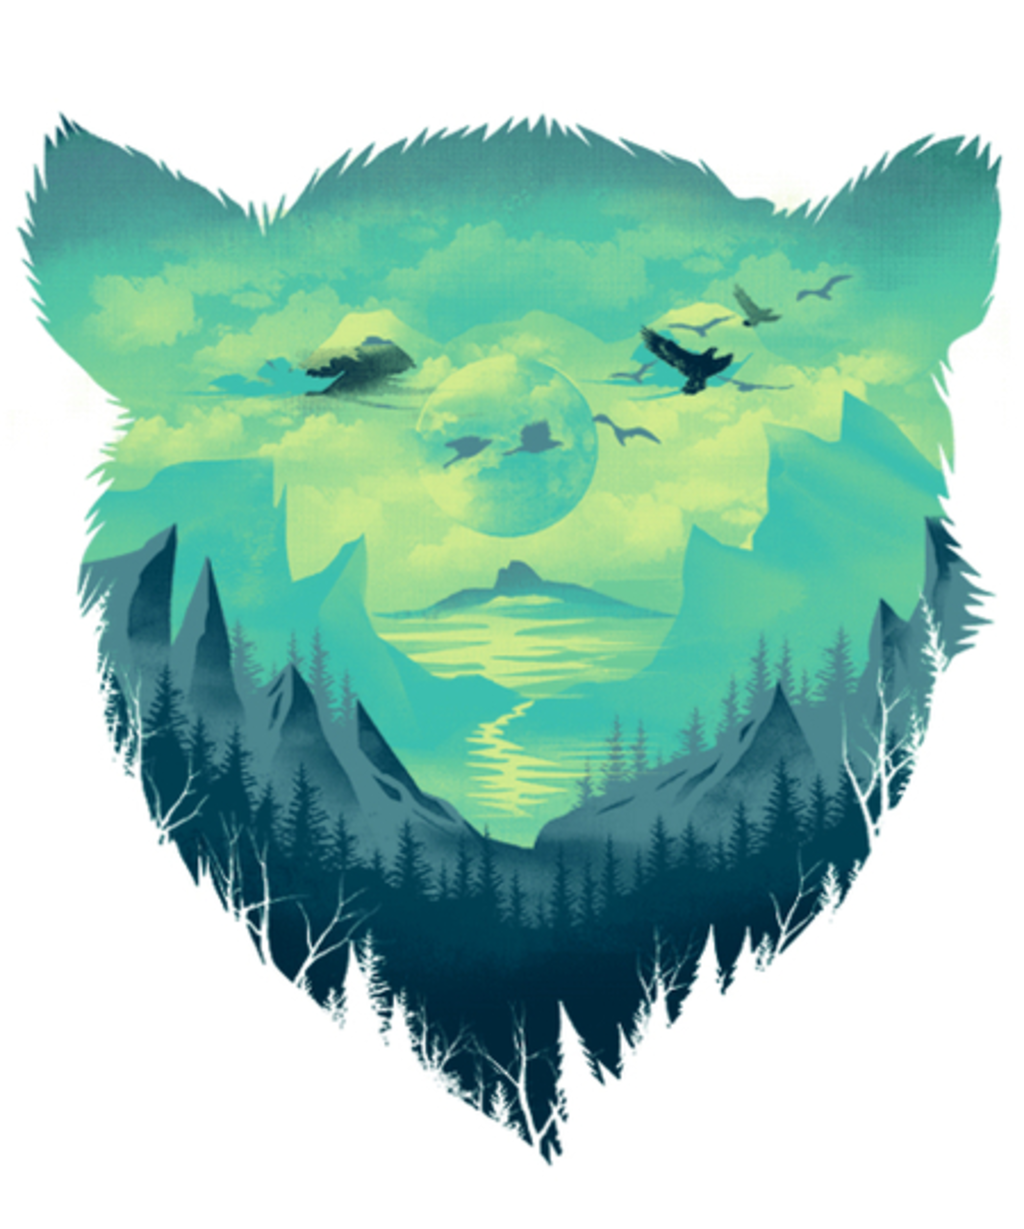 Qwertee: As Cool As You